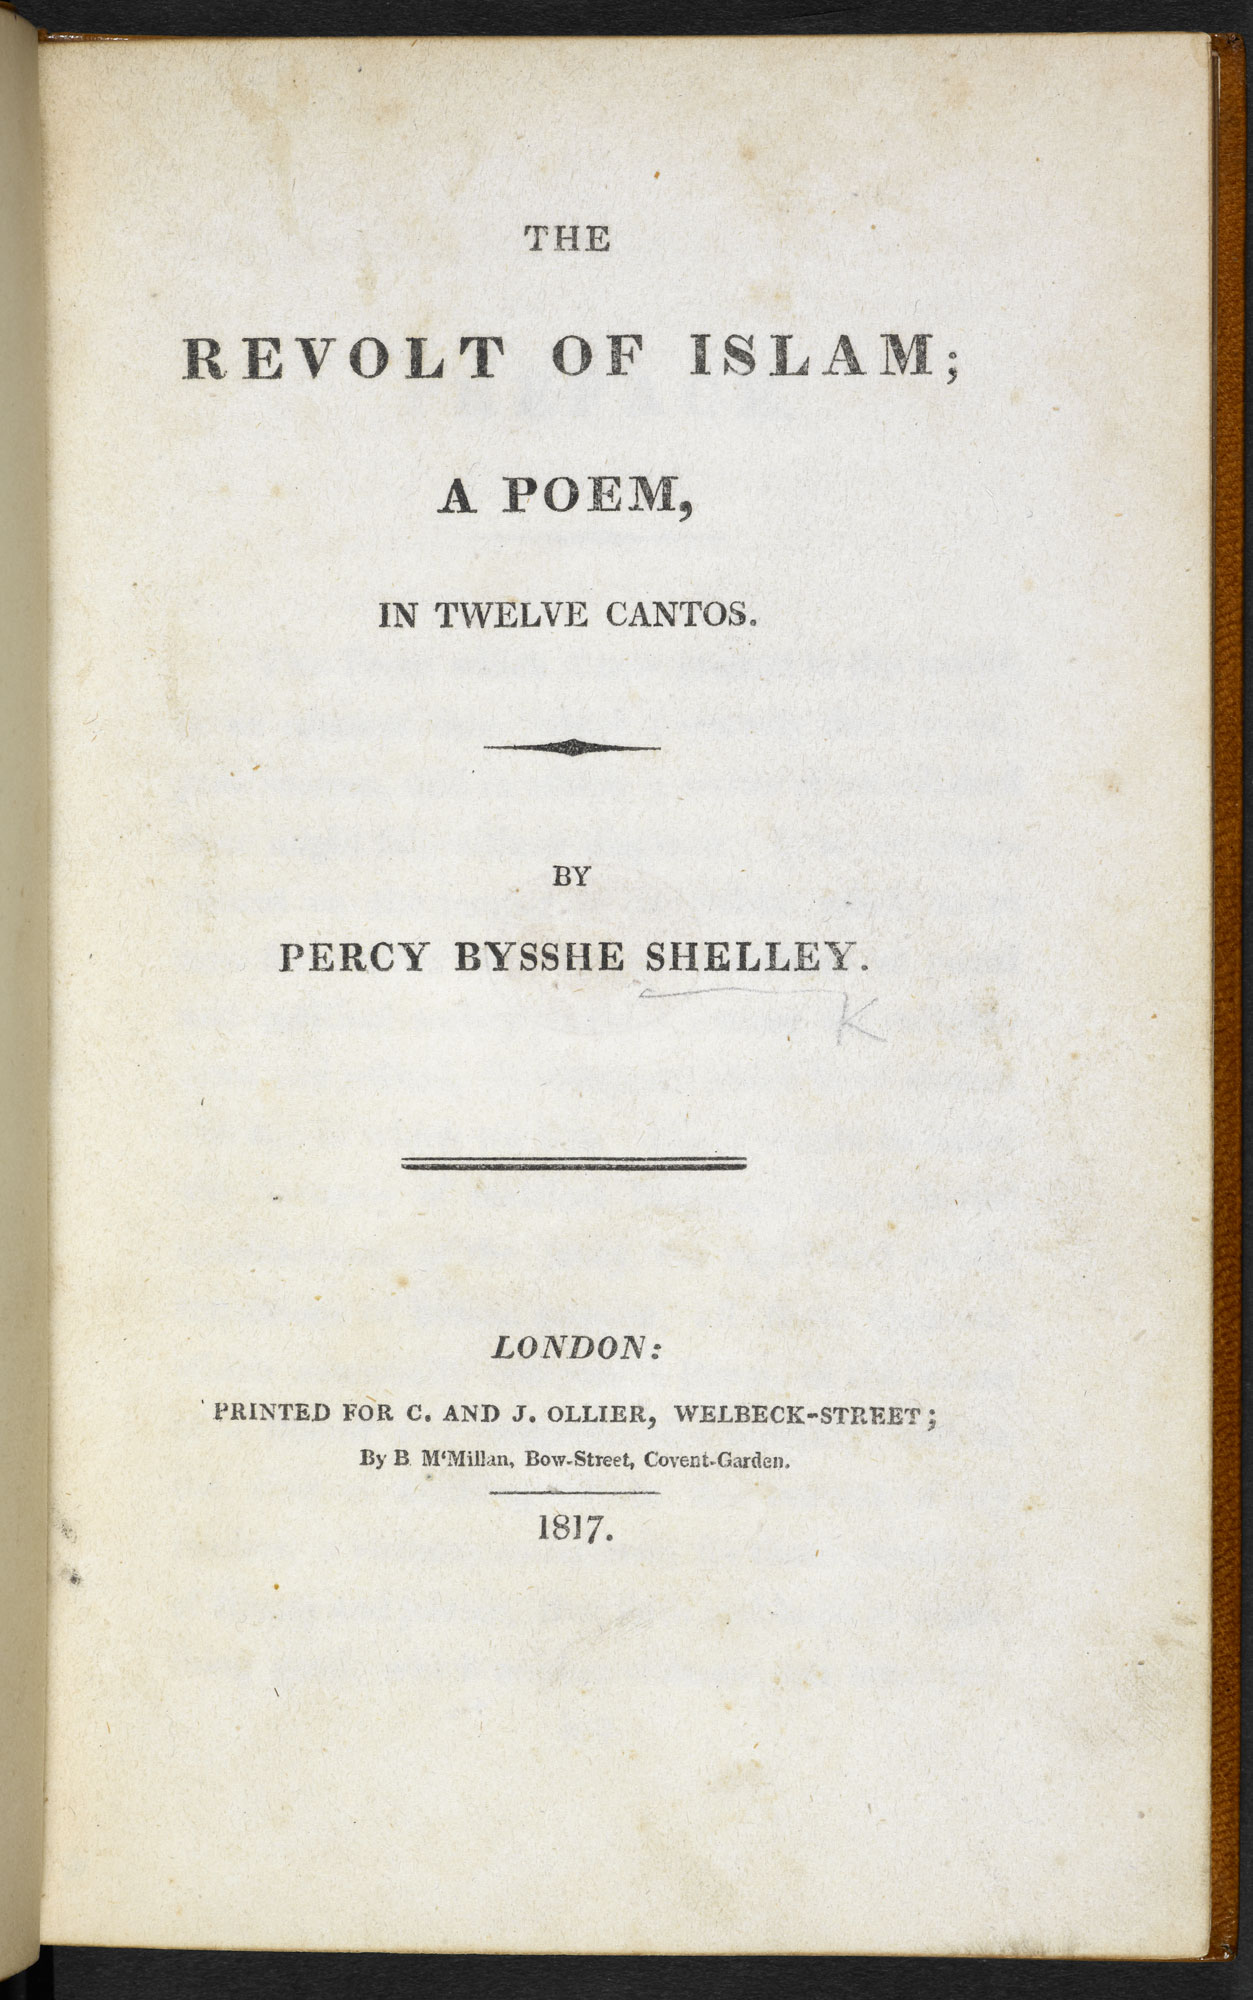 The Revolt of Islam by P B Shelley [page: title page]